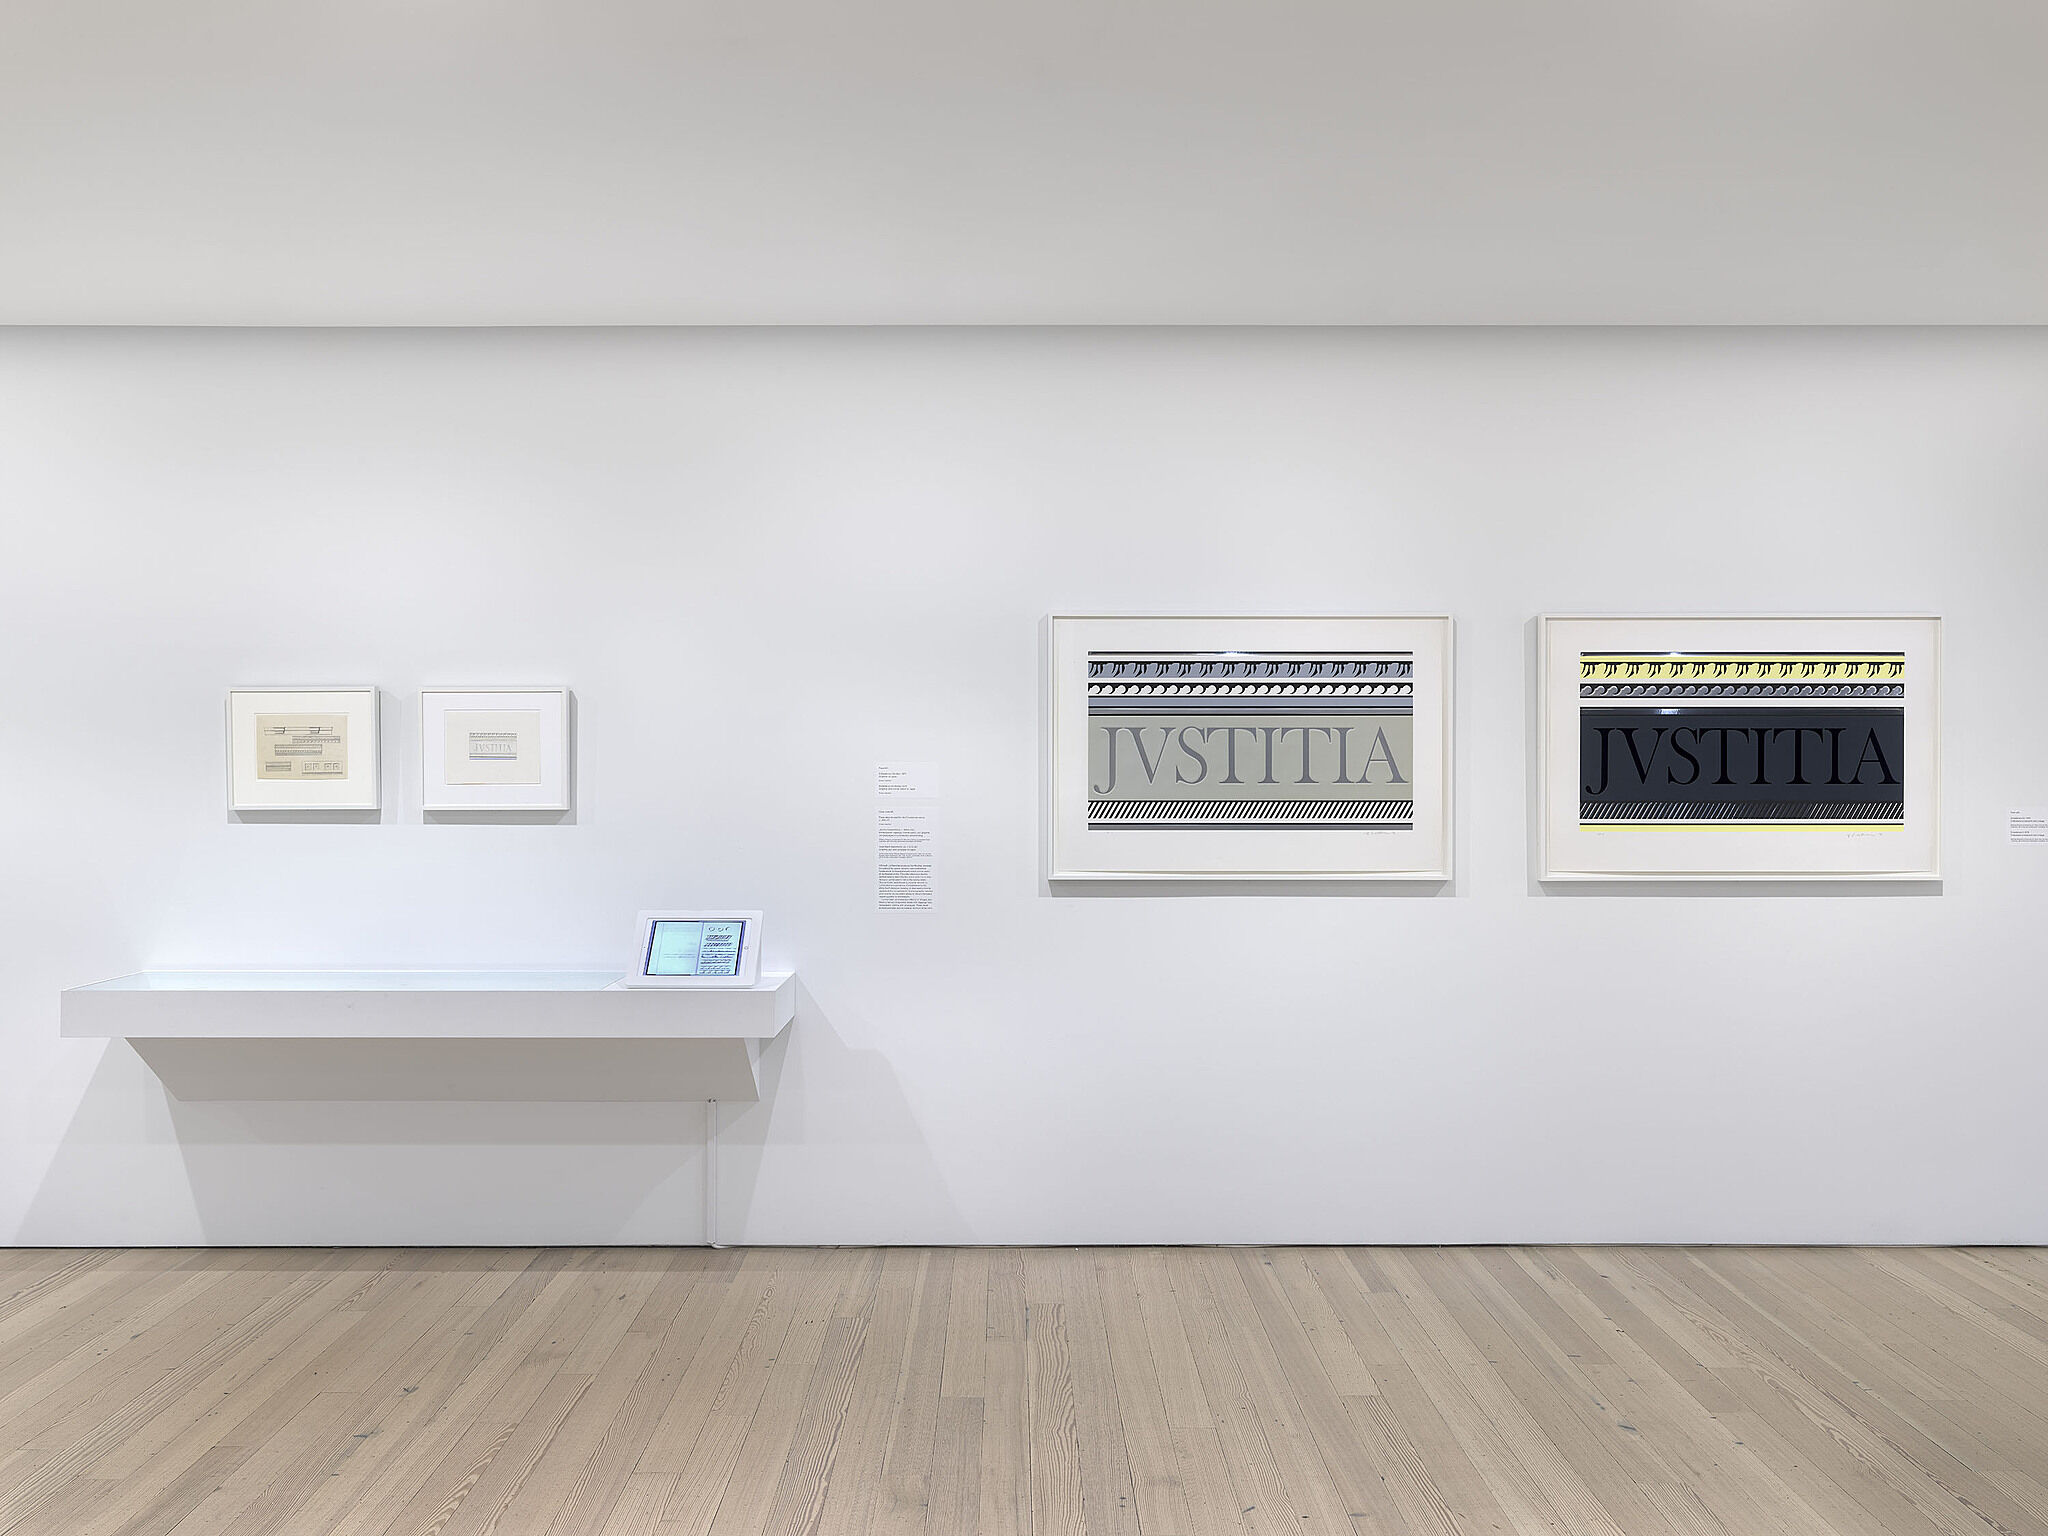 A photo of the Whitney gallery with various artworks on the wall.